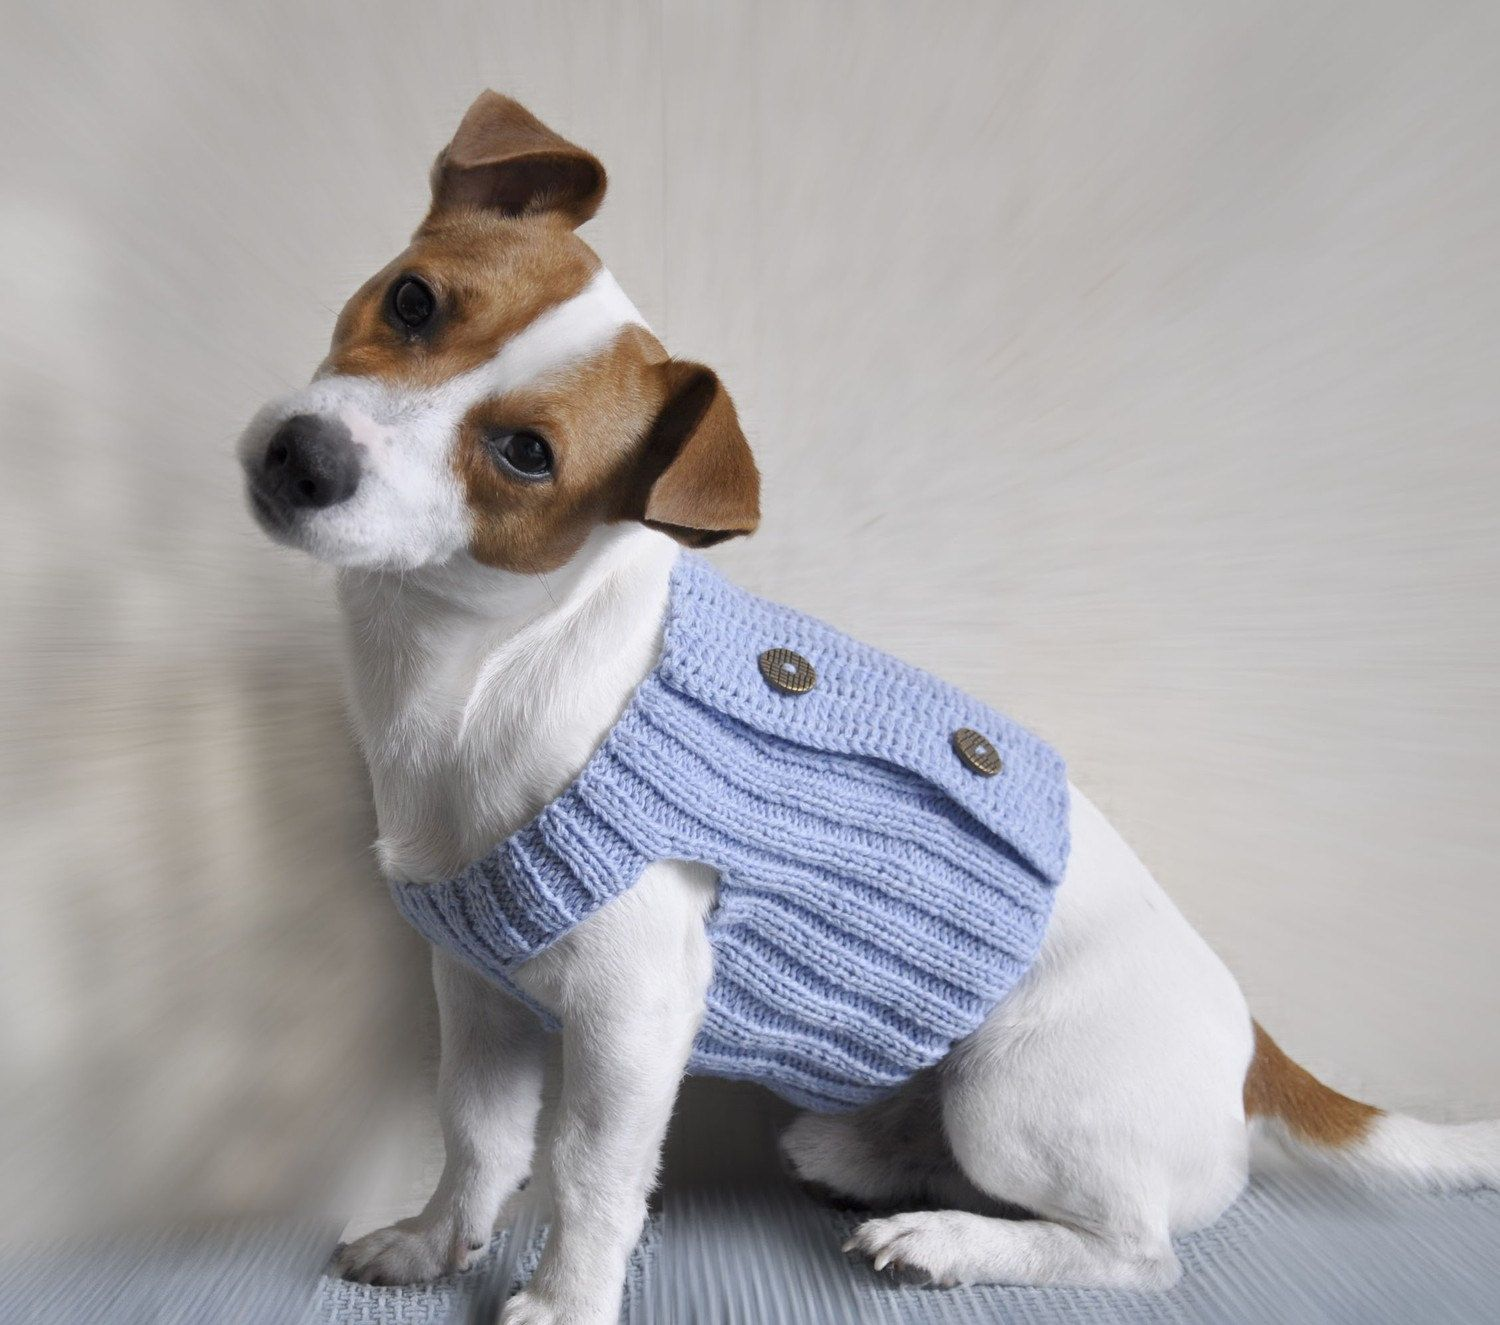 Knitted Dog Coats Patterns Free : Knitting Pattern, Dog Sweater Pattern, Knit Dog Sweater Pattern, Dog Clothes ...